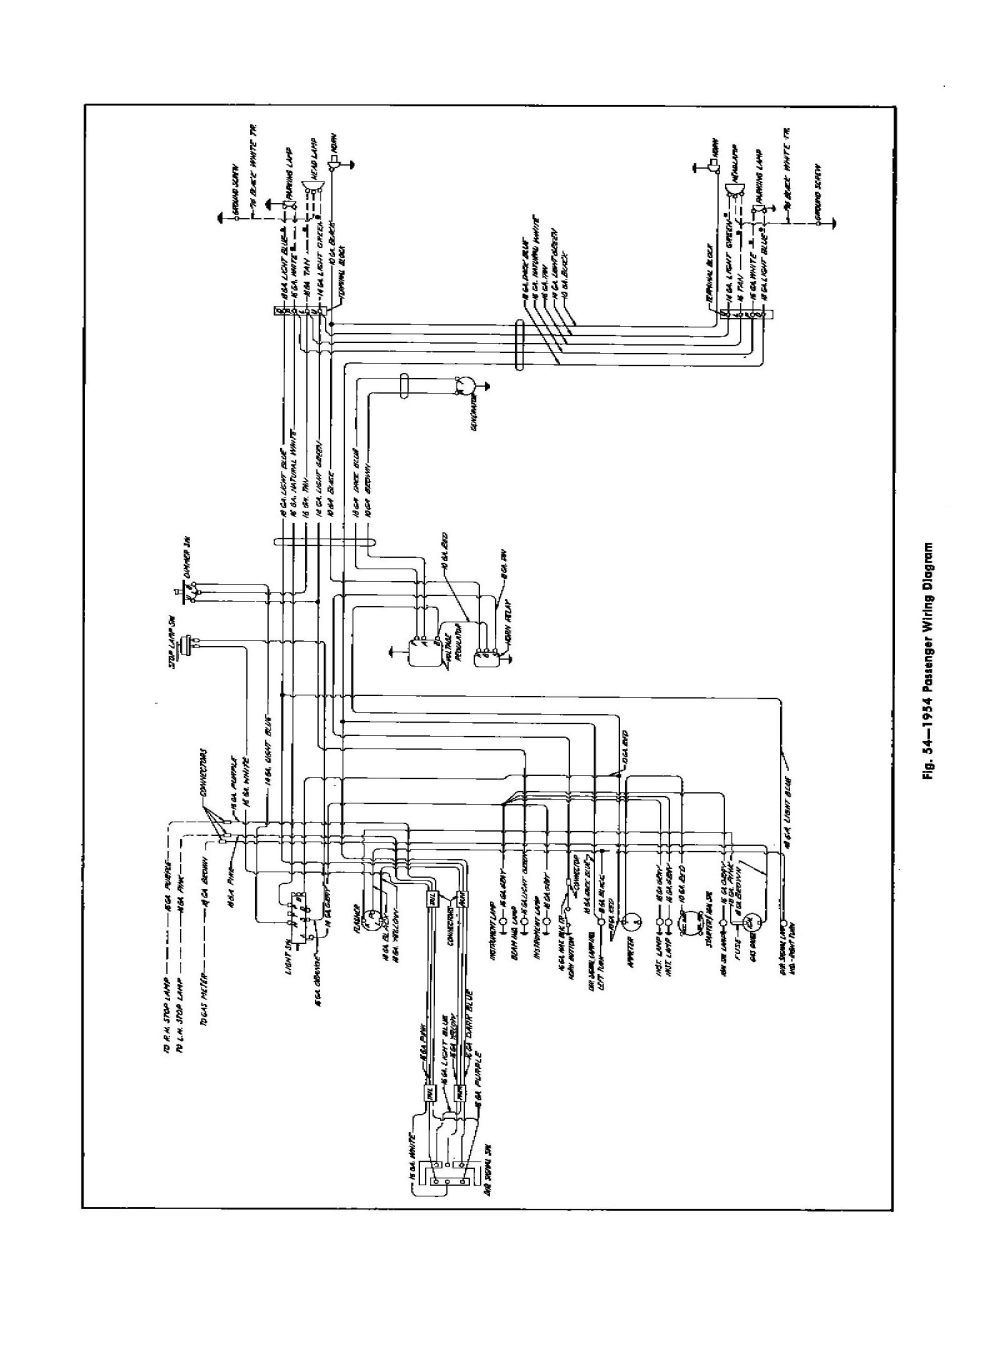 medium resolution of 3100 v6 engine wiring diagram wiring library rh 69 kandelhof restaurant de ecu harness diagram ecu